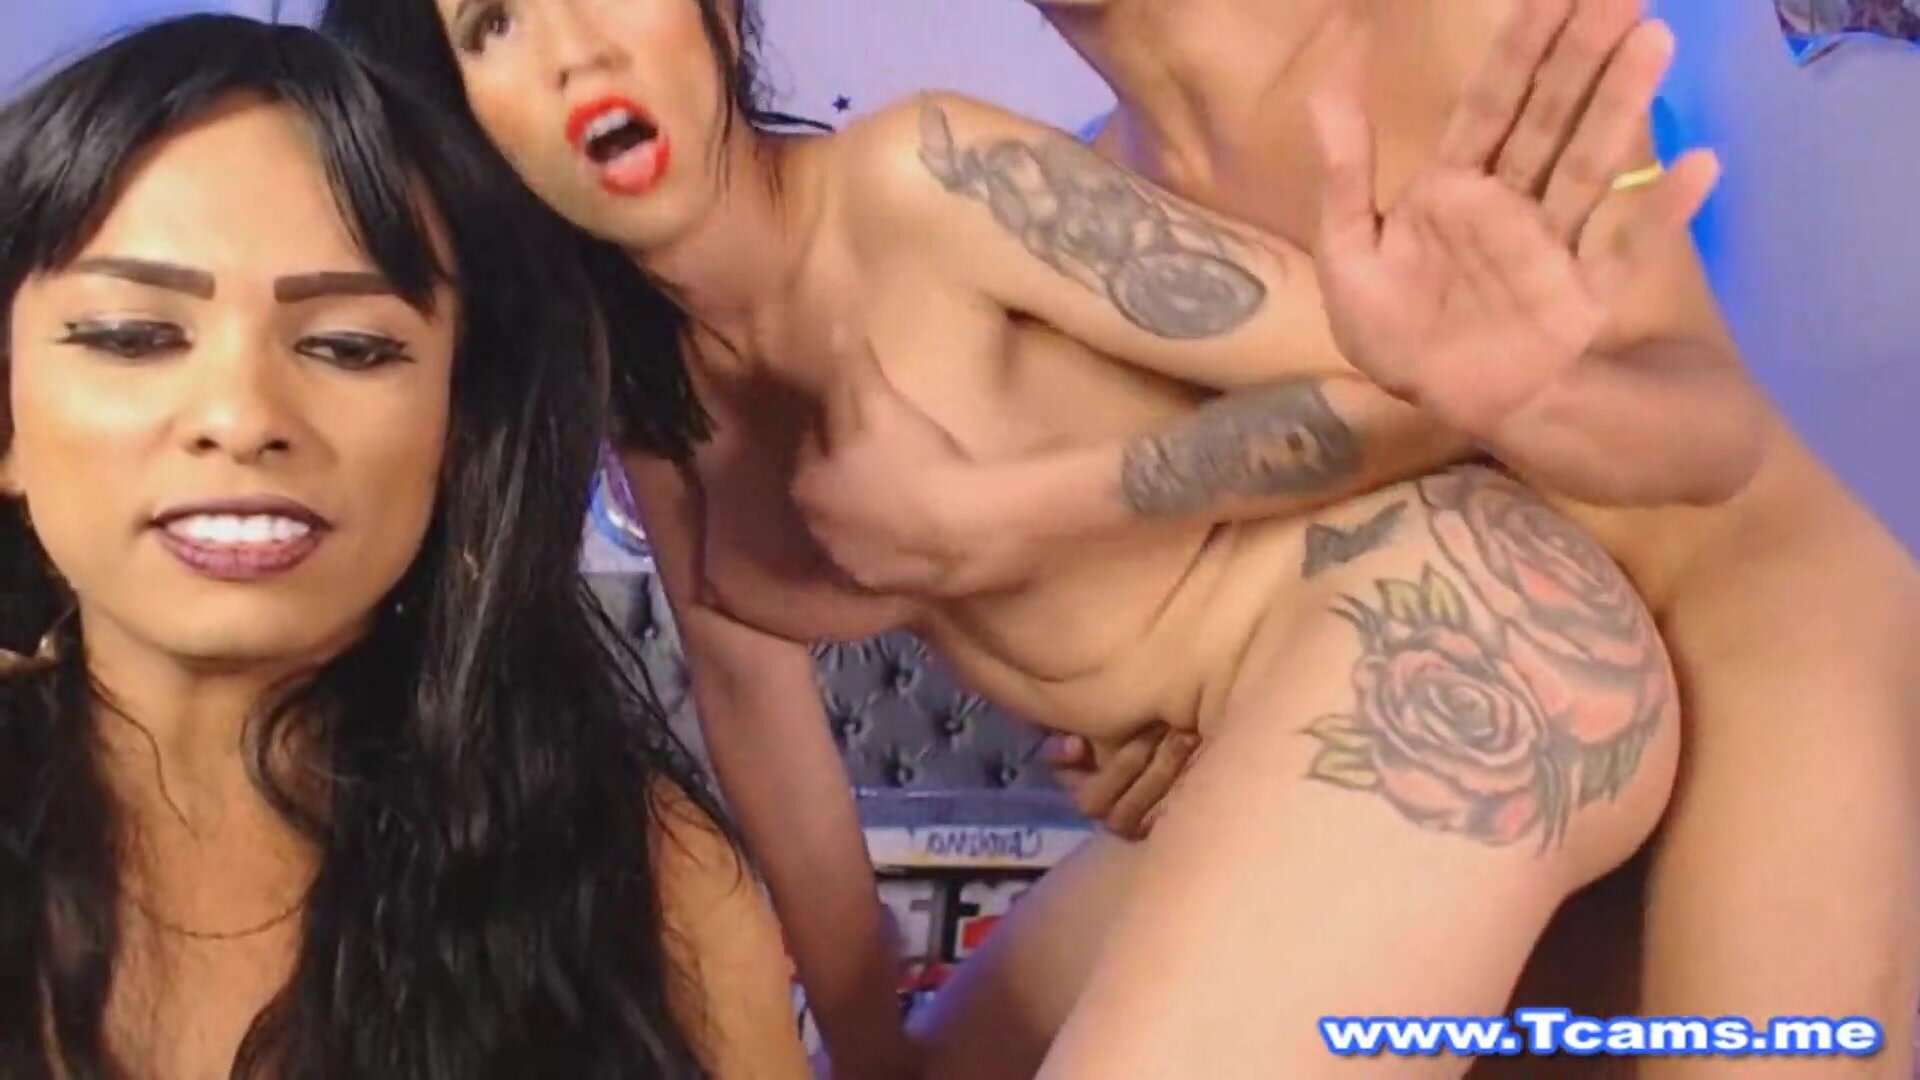 Shemales On Their Threesome Hot Show